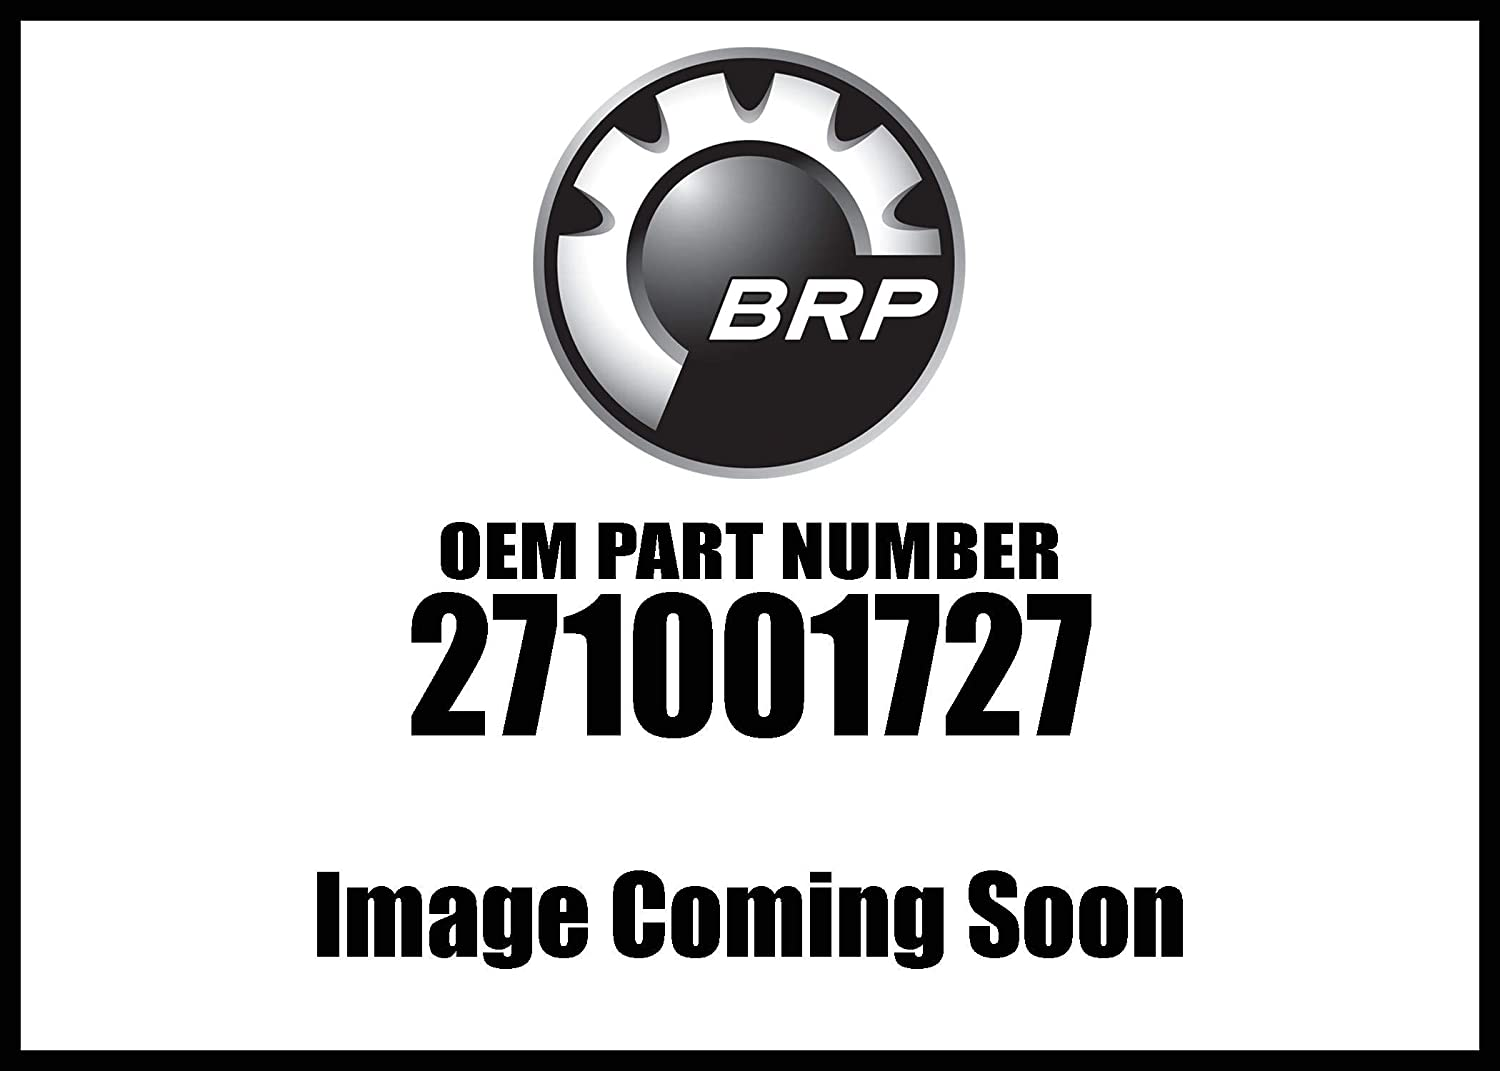 Sea-Doo 2011 Gts Pro 130 Reverse Handle 271001727 New Oem